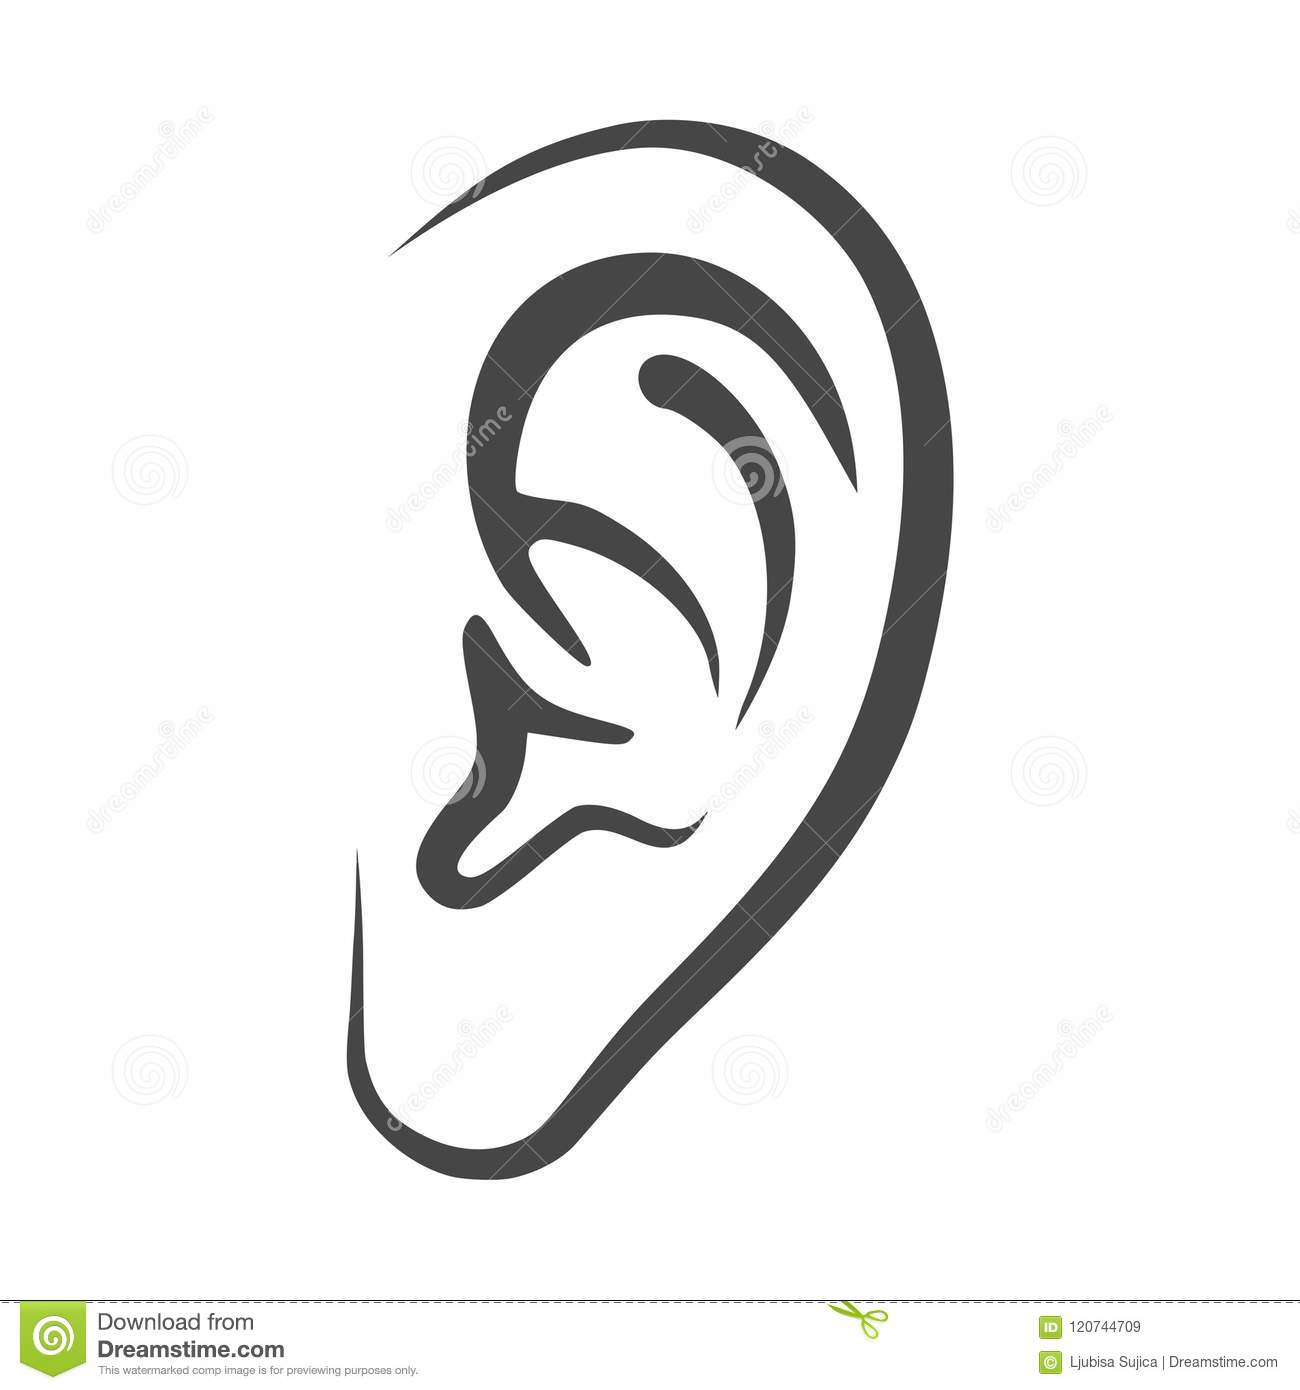 It is a picture of Persnickety Ear Drawing Simple